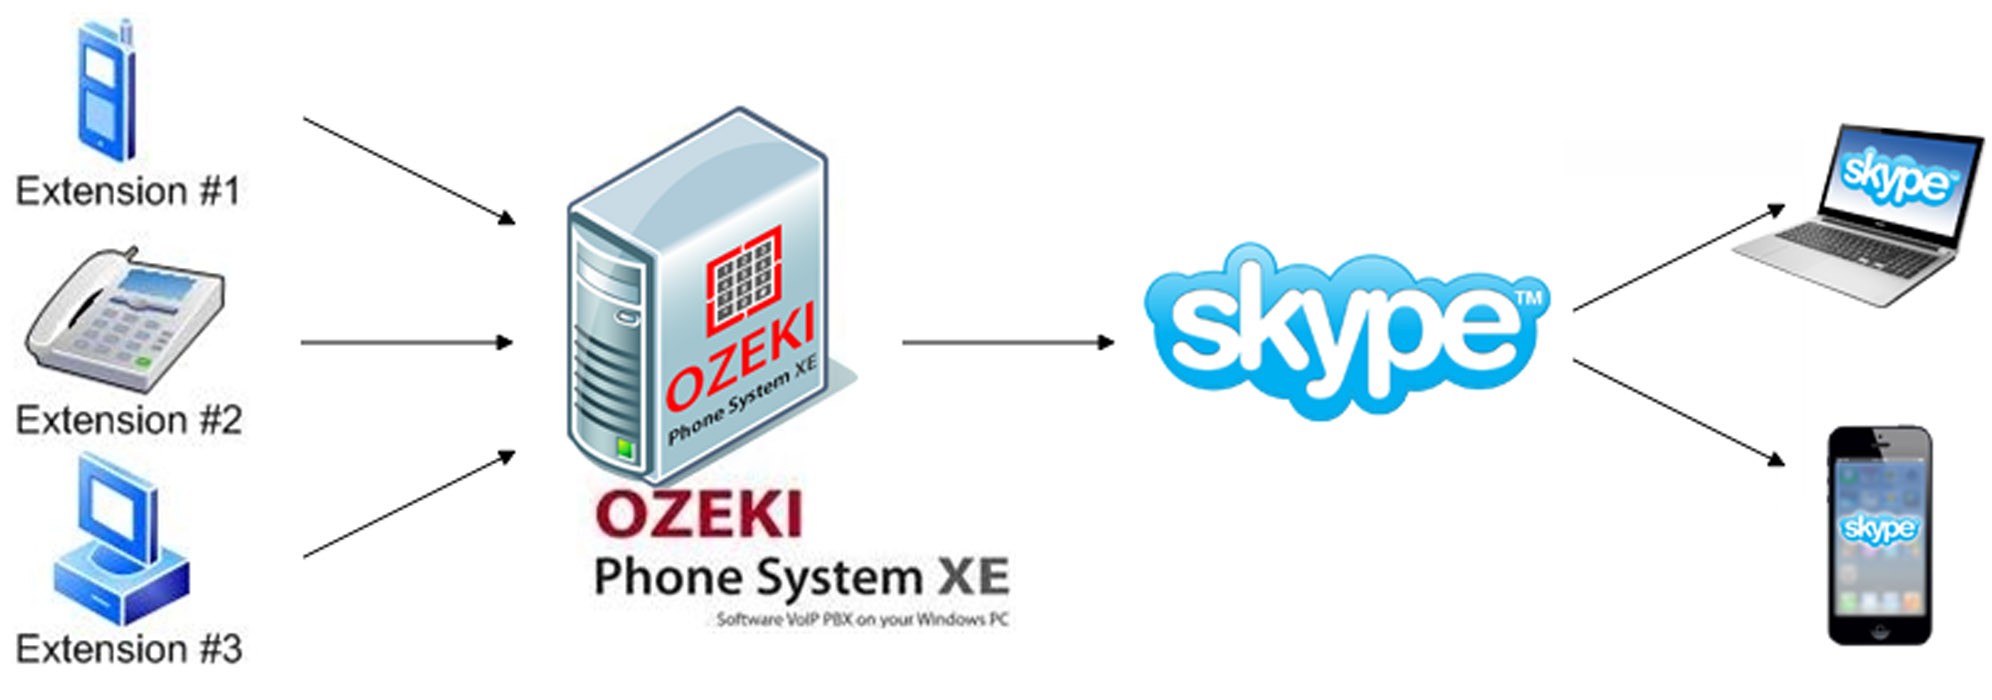 voip calls from ozeki phone system to telephones via skype connect